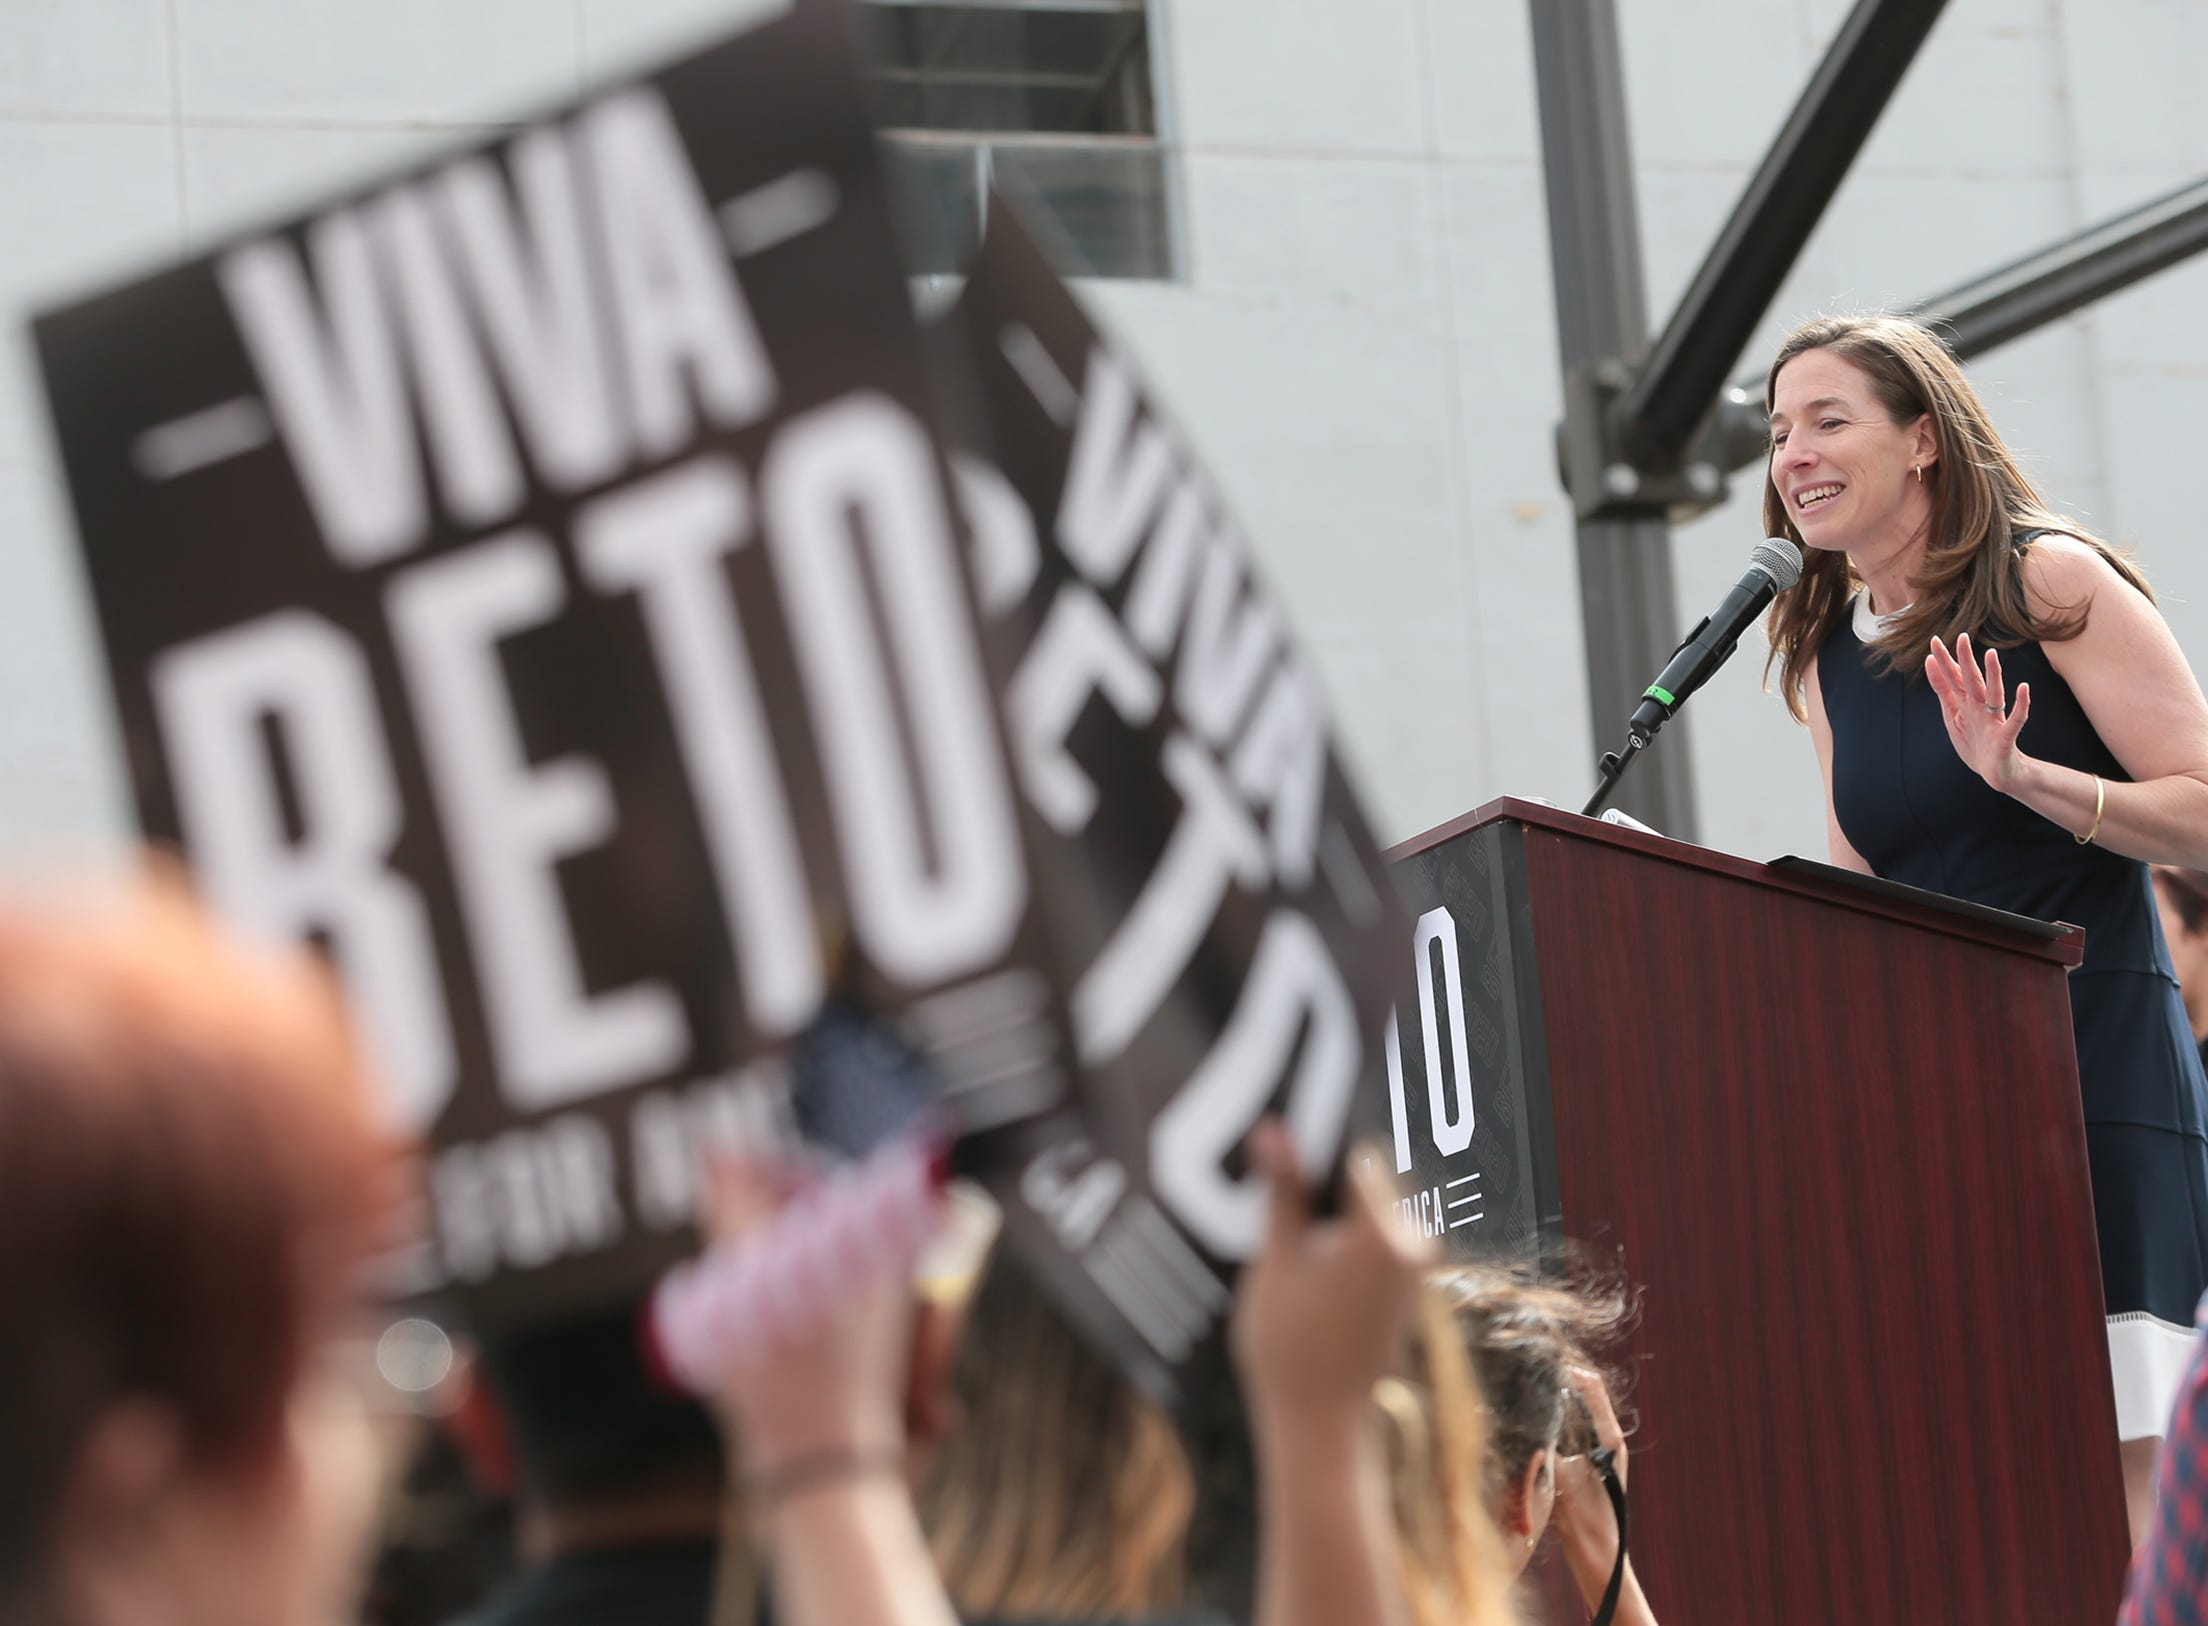 Amy Sanders O'Rourke introduces her husband Beto O'Rourke as he officially kicks off his presidential campaign Saturday on El Paso Street in downtown El Paso.